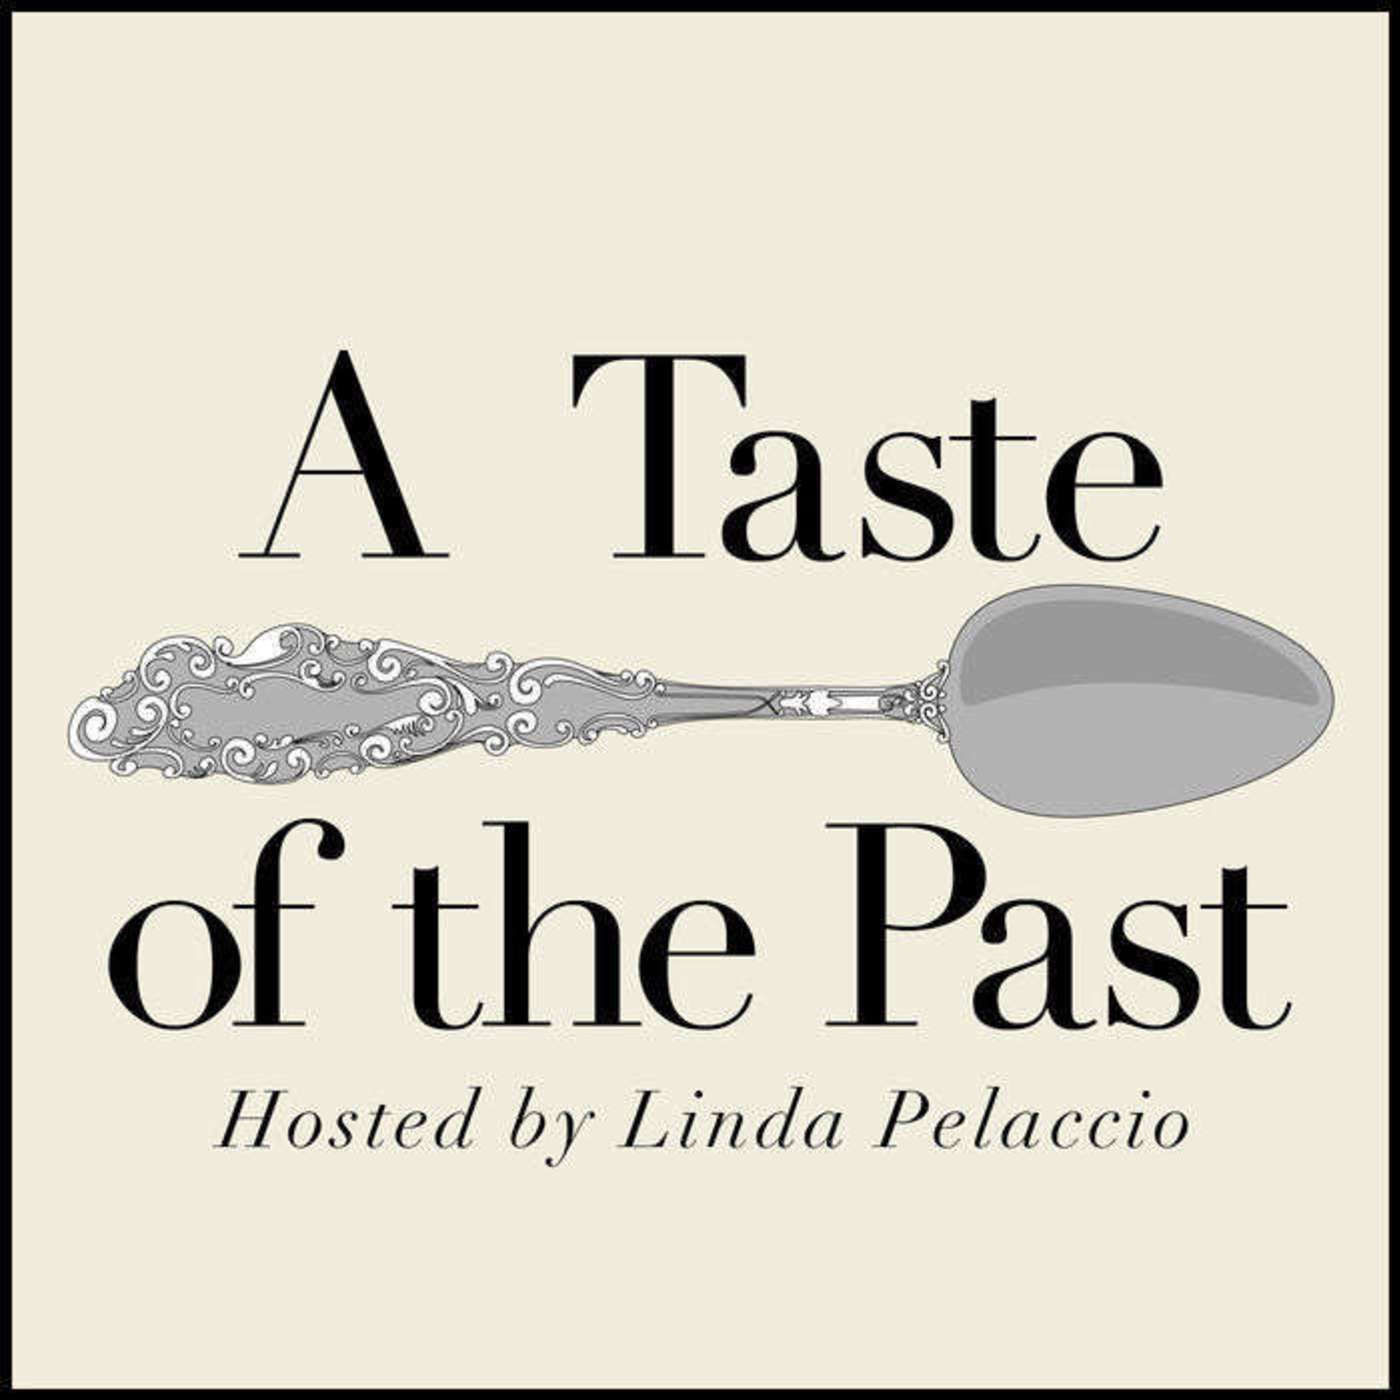 Episode 214: 100 Years of Pyrex: How it Changed the Way America Cooks